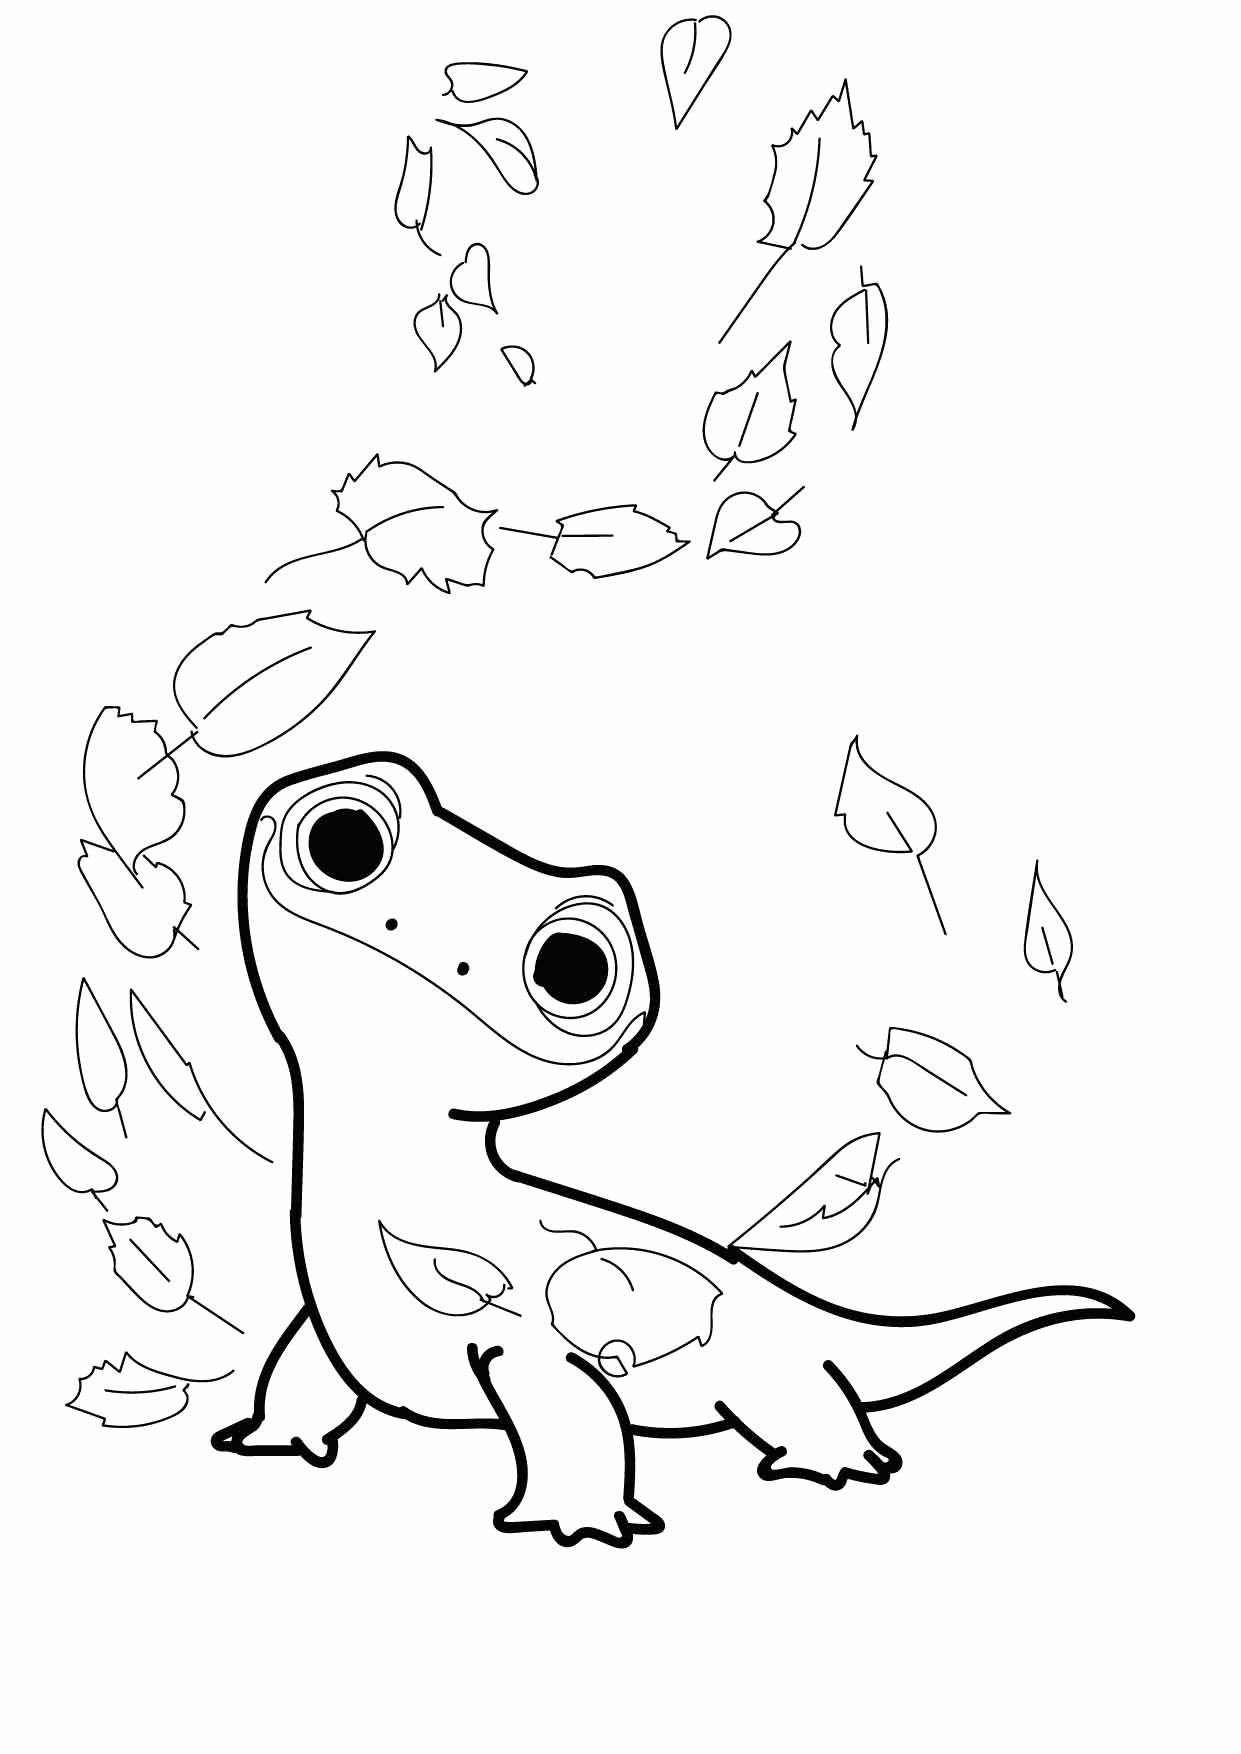 Cartoon Frog Coloring Pages Unique Coloring Pages Bruni